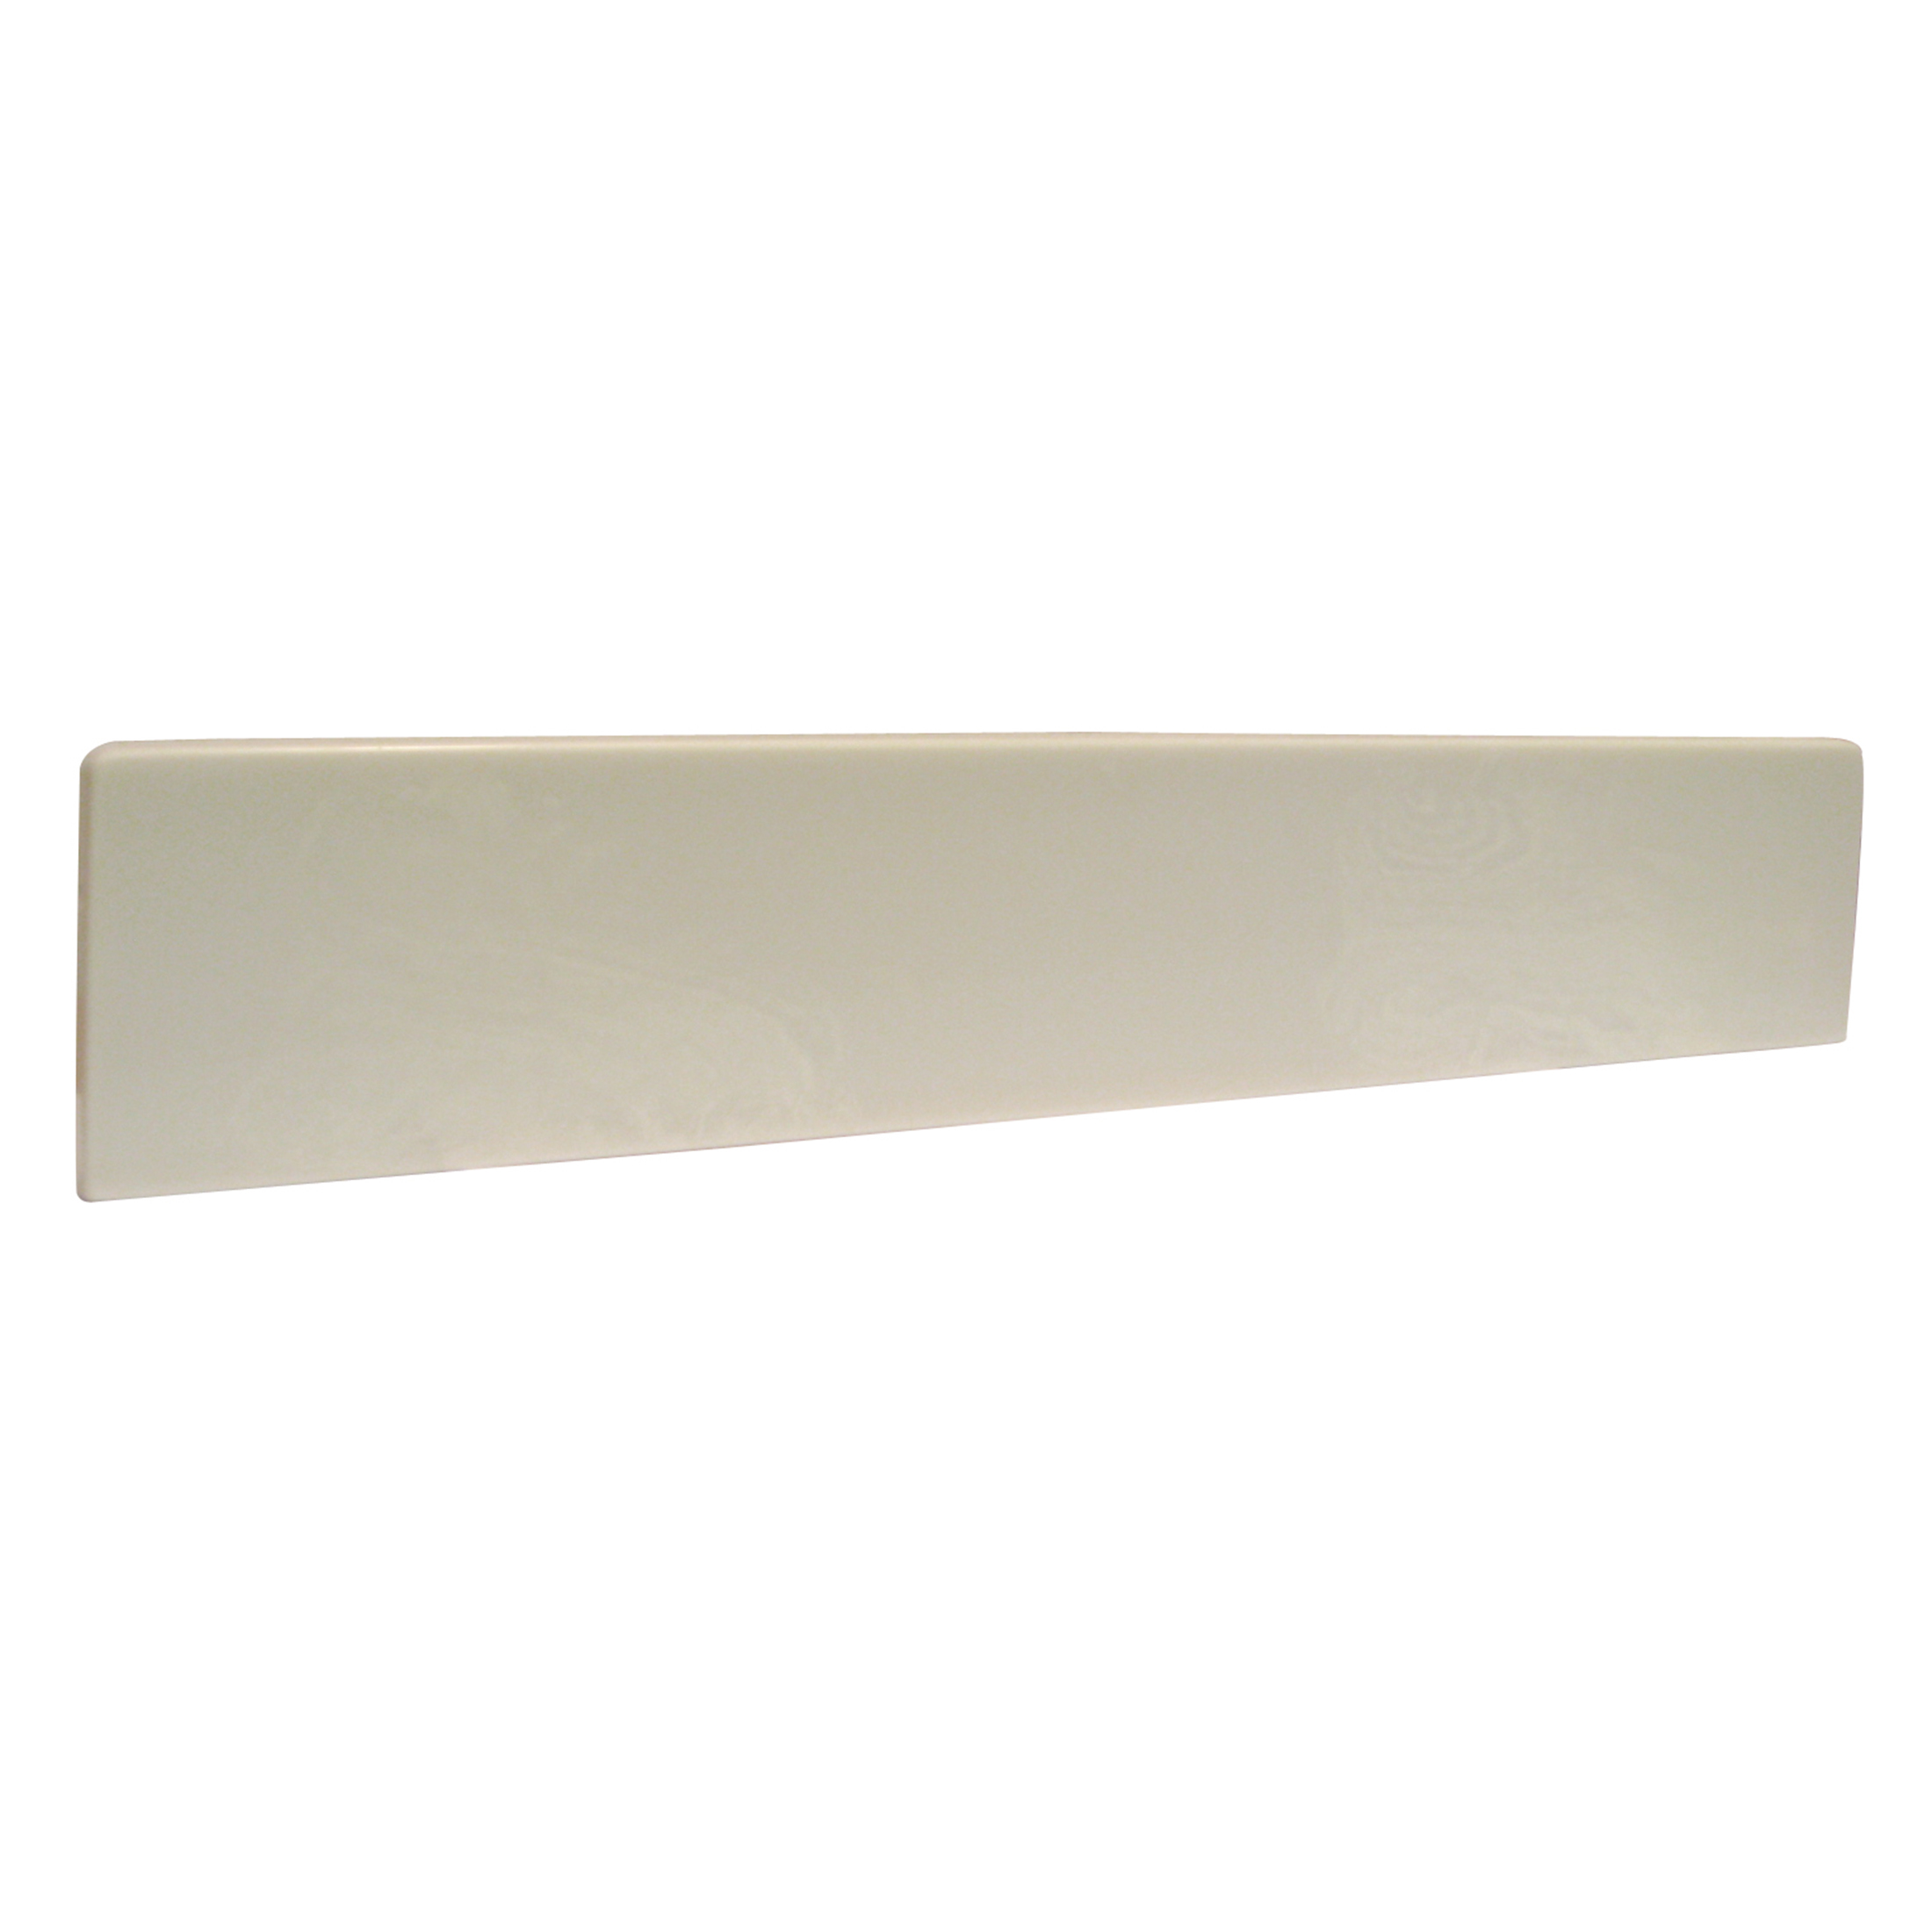 19-Inch Universal Marble Side Splash, White